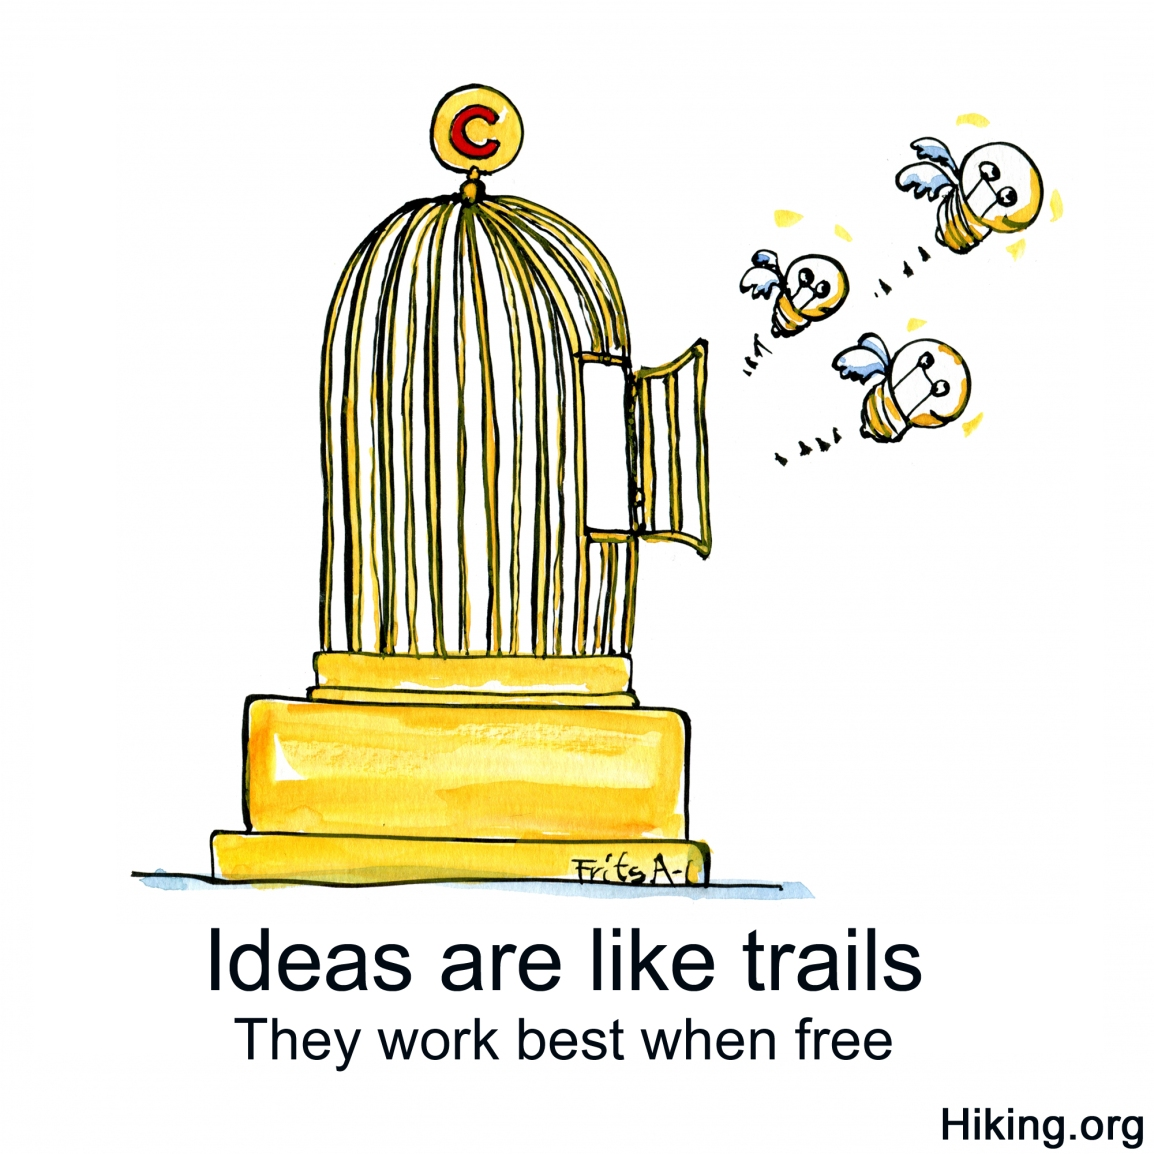 Ideas like trails need to be free